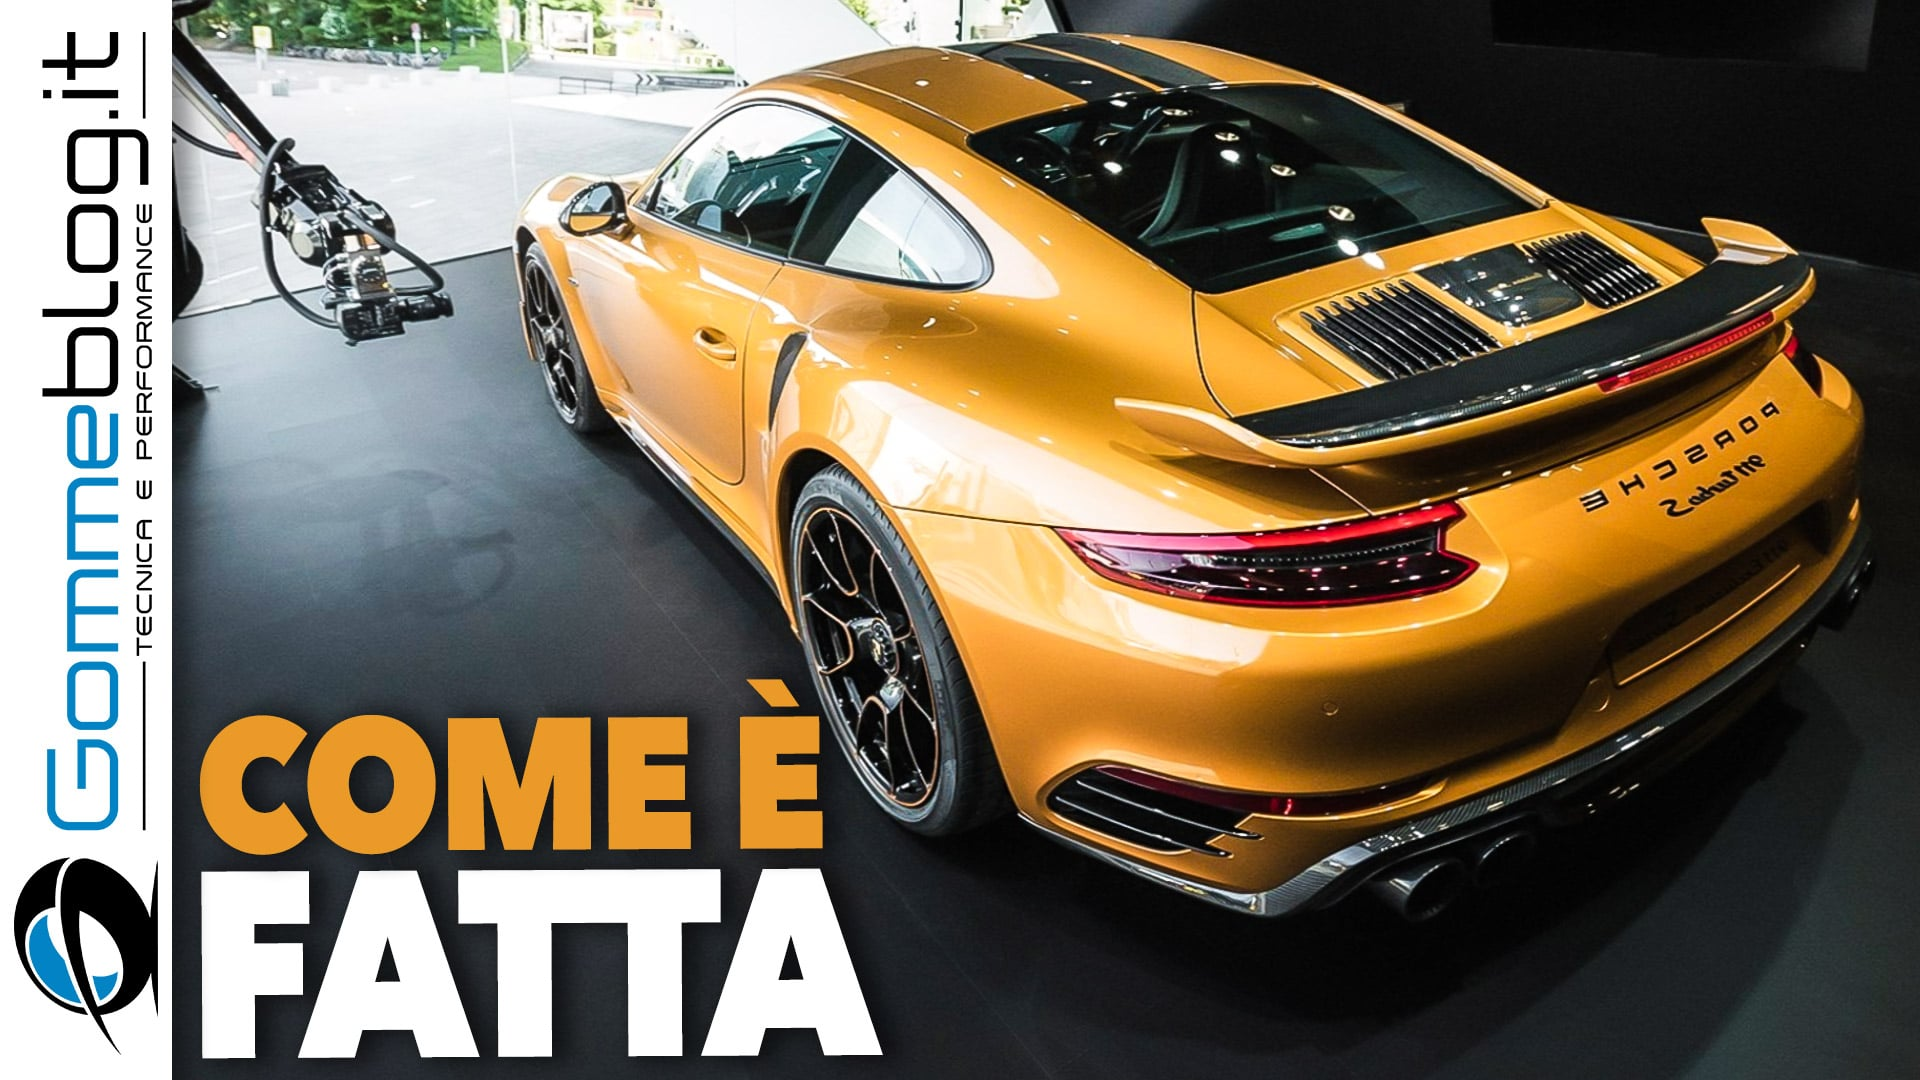 Porsche 911 Turbo S Exclusive Series: VIDEO COME è FATTA 5